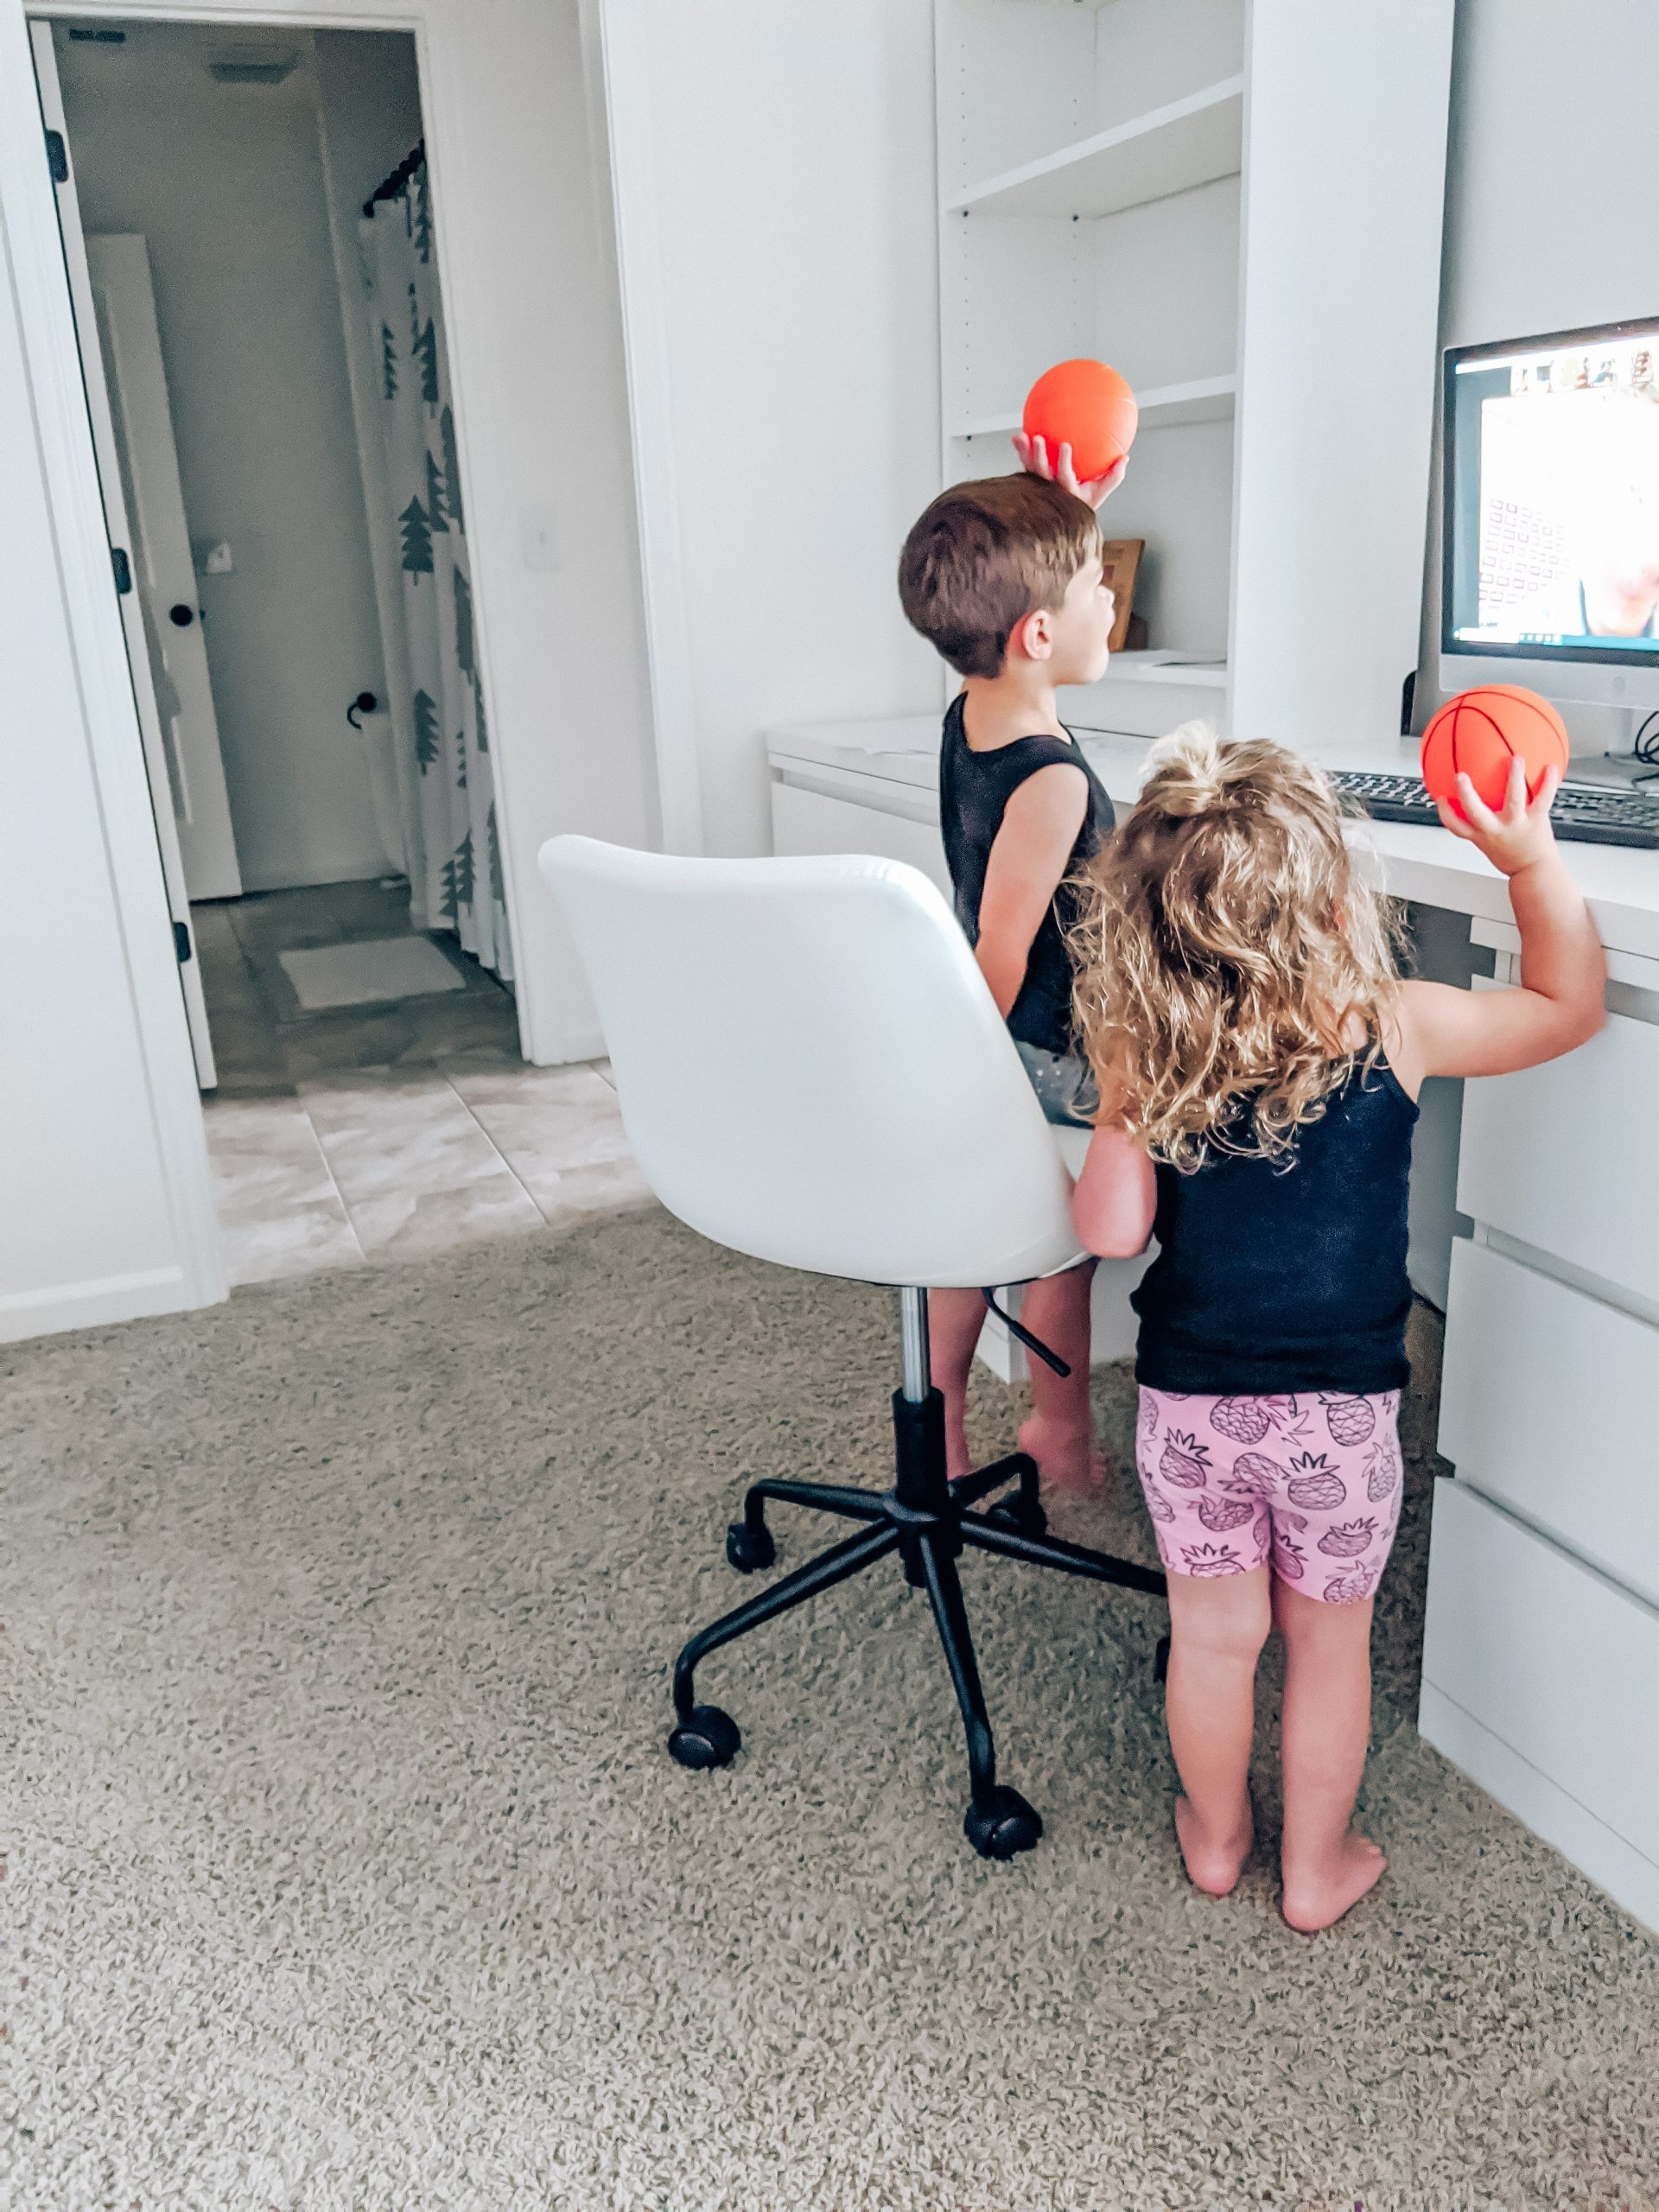 Best Kids Desk Chair - Byron Task Chair Reviews - This kids desk chair is perfect for your virtual learning setup! If you're looking for the best kids desk chair, read this detailed Byron Task Chair review! (sponsored by #Wayfair - #virtuallearning #homeschool #homeoffice )